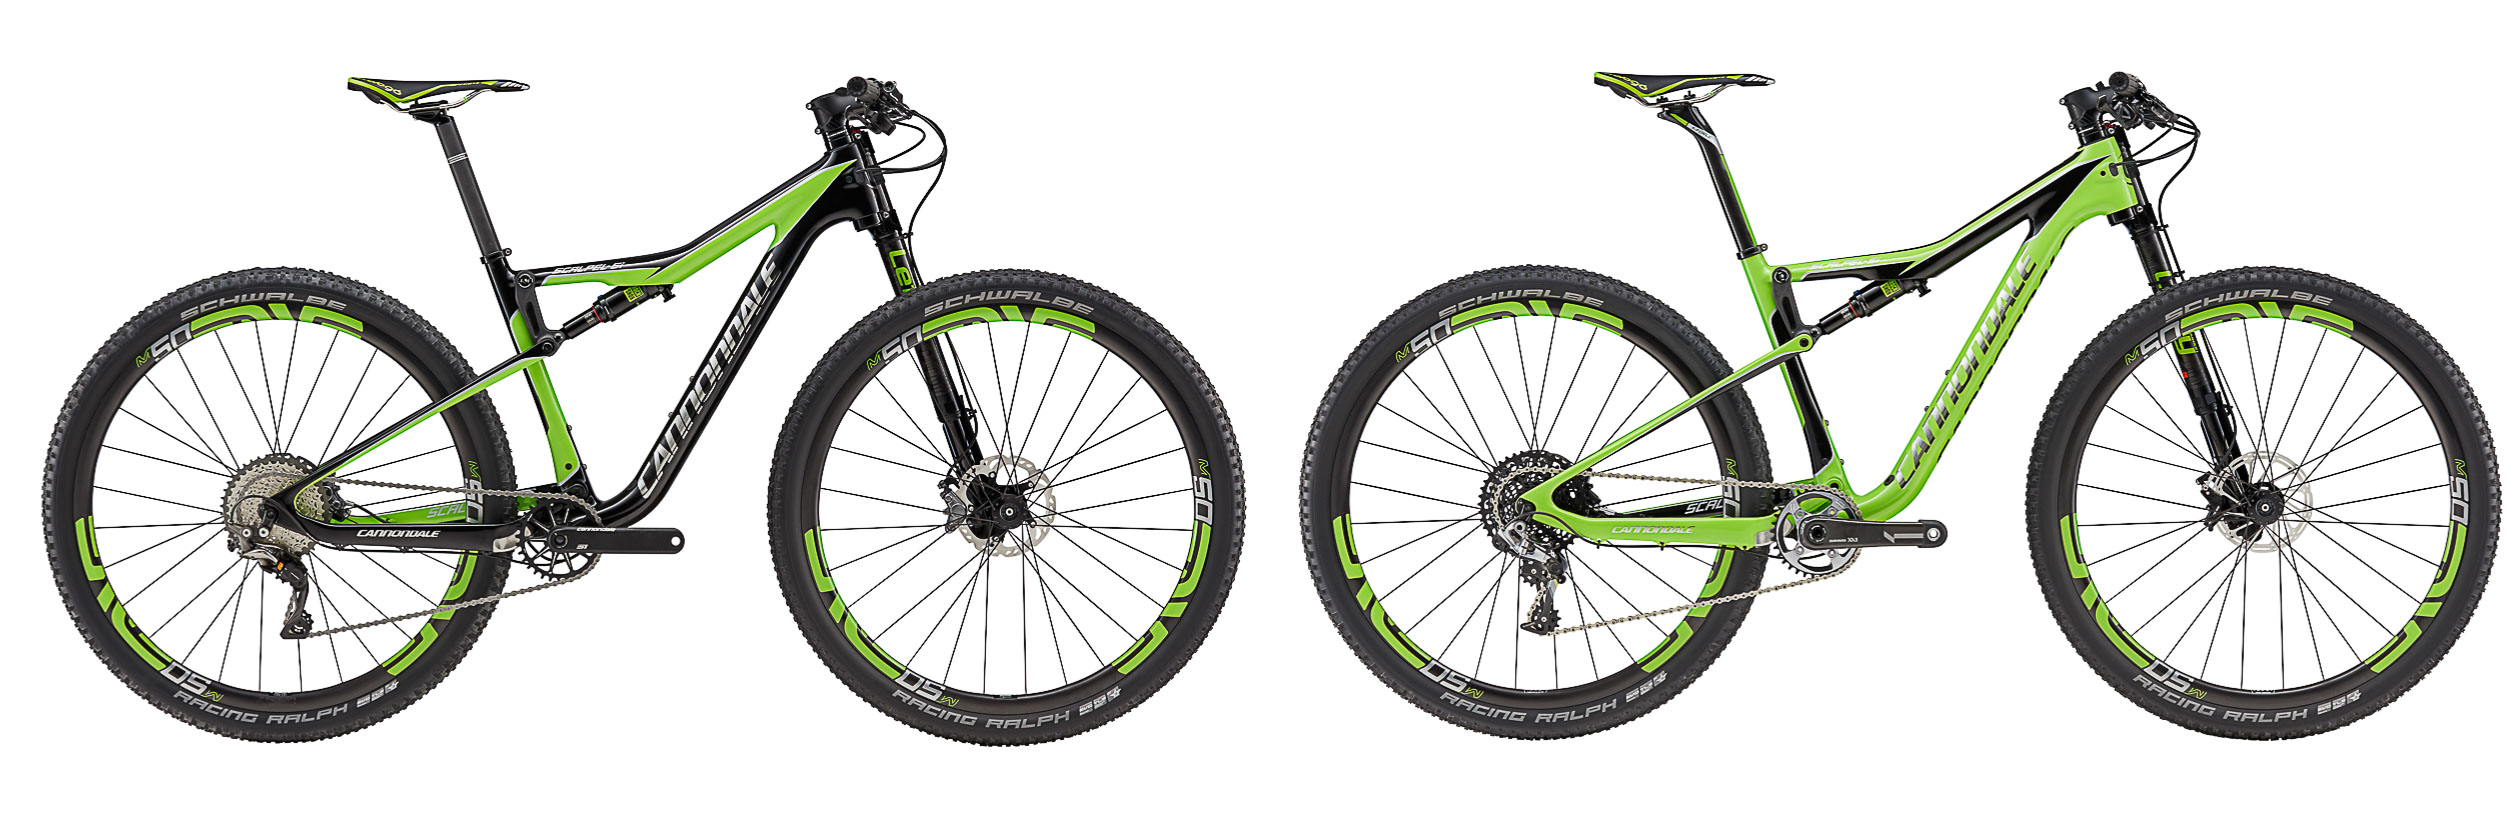 3-Cannondale_Scalpel_2017_Copyright_OBeart_VojoMag-1